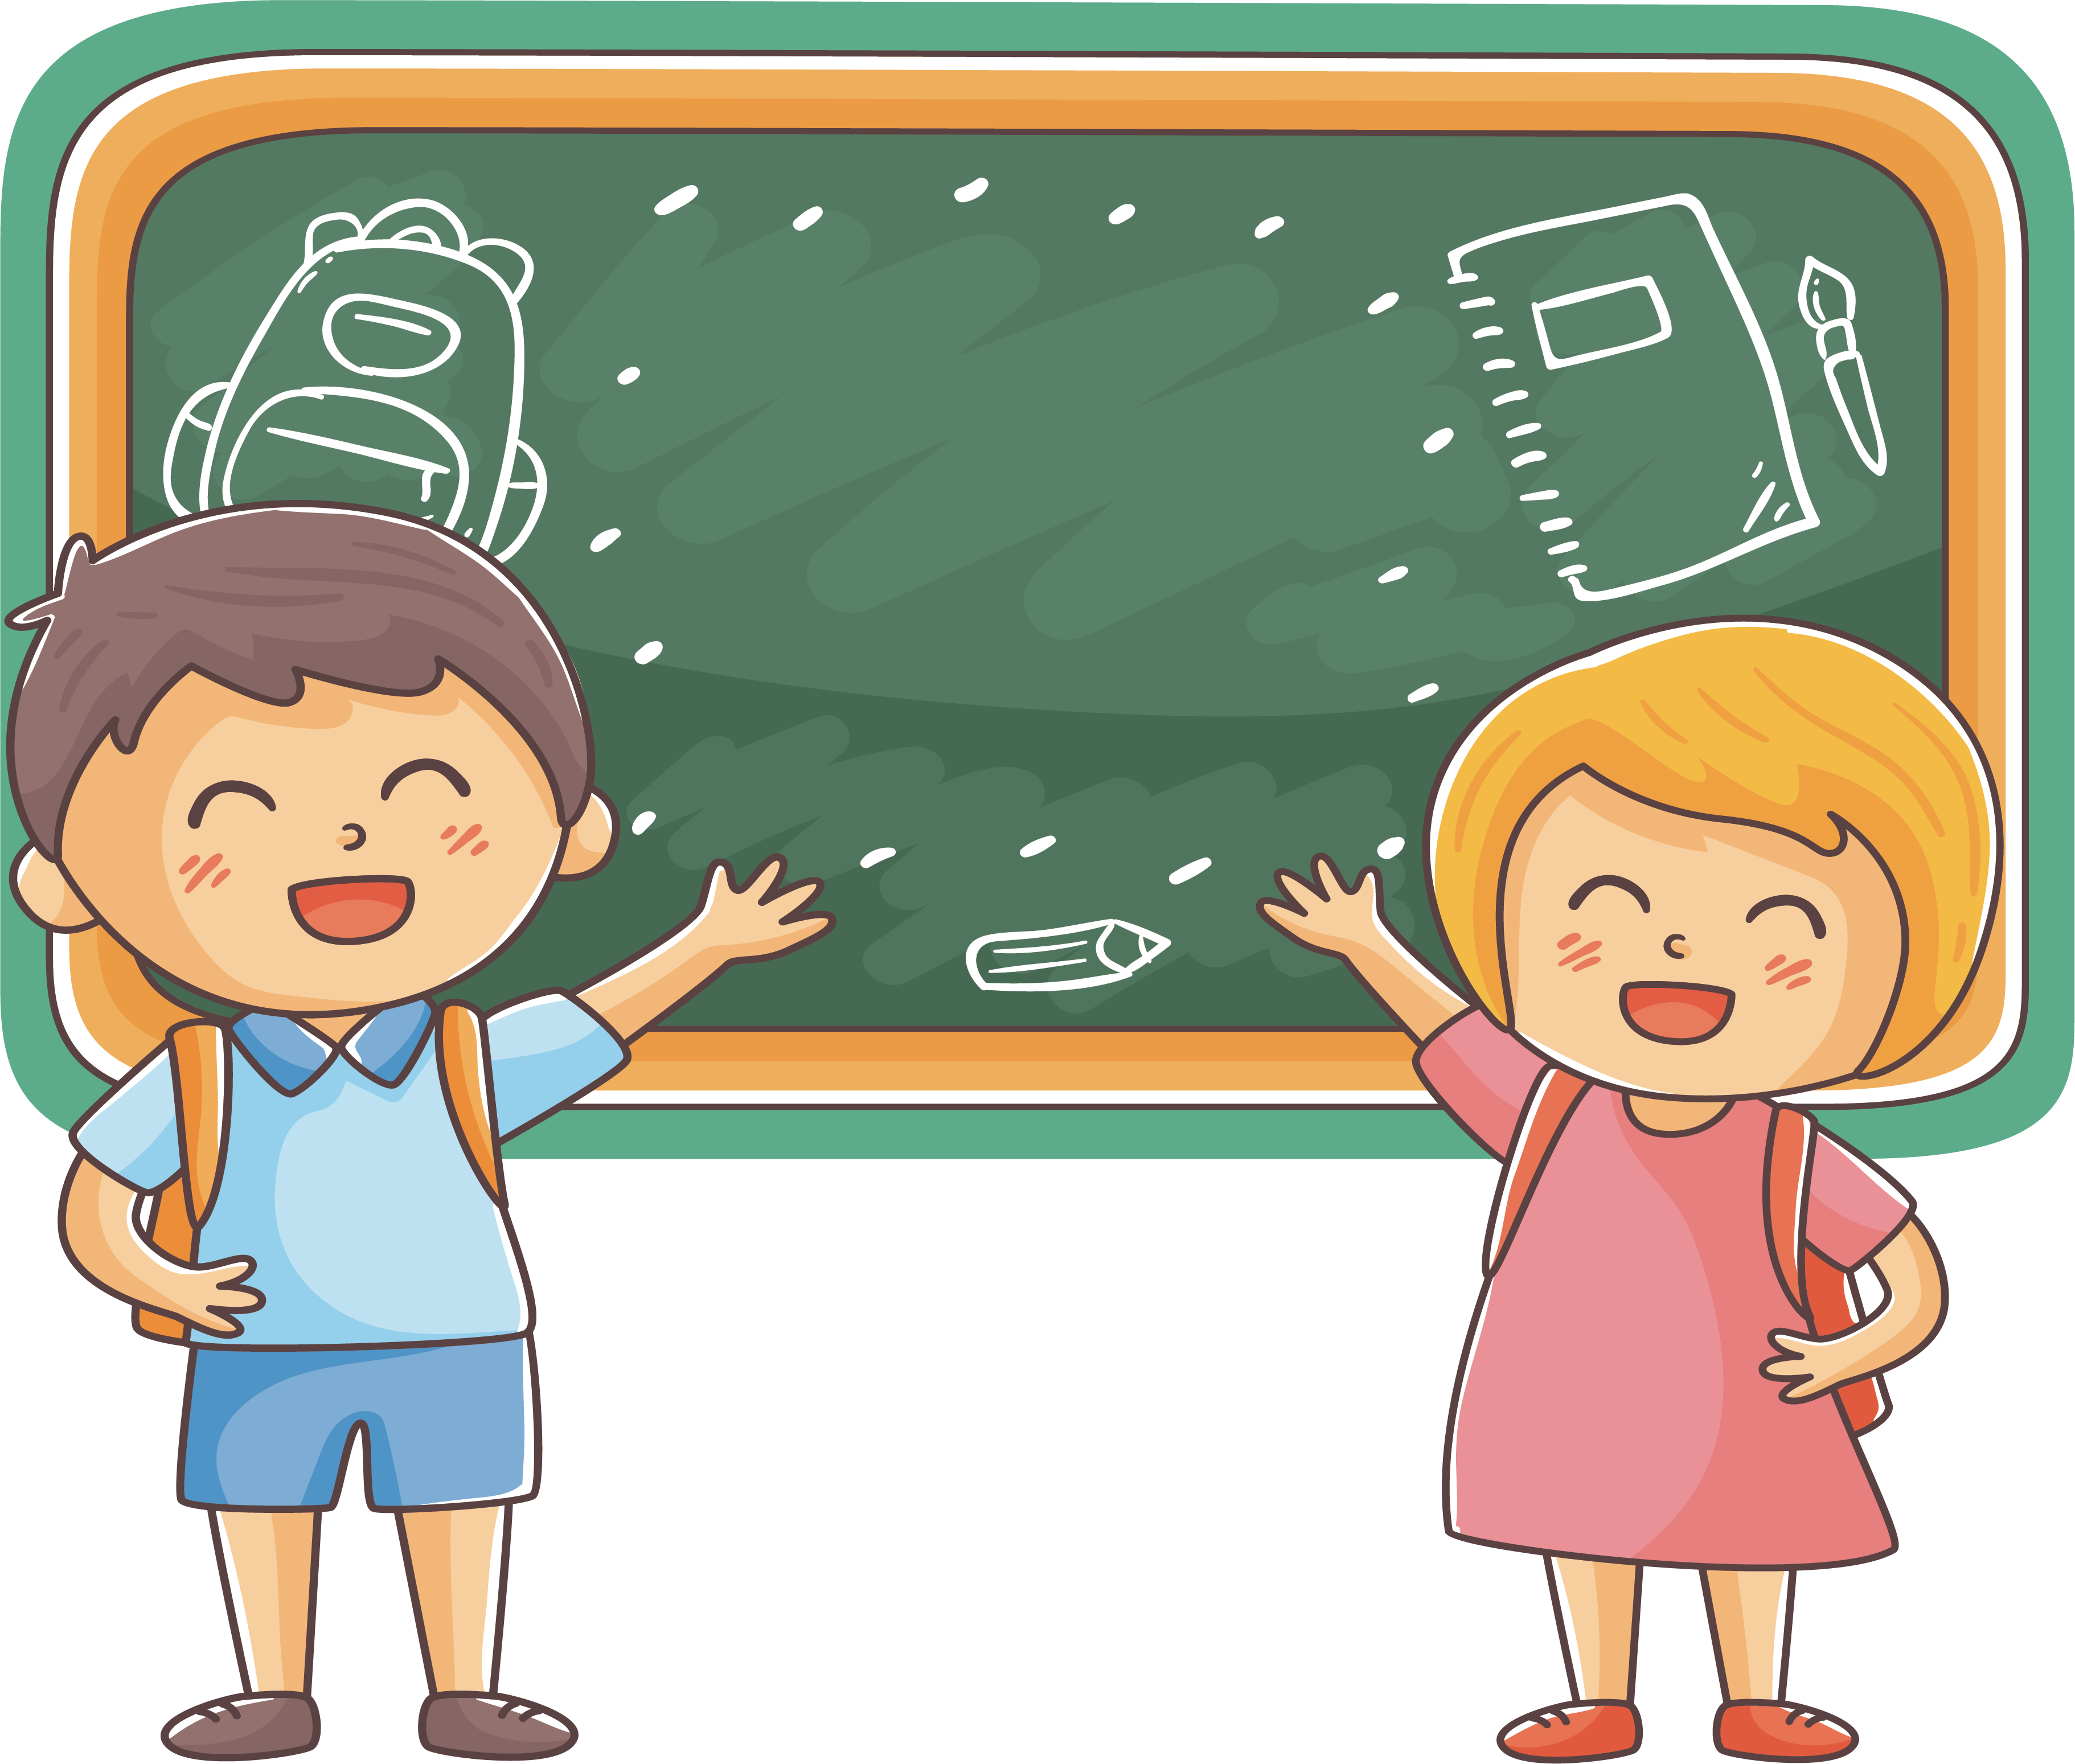 kisspng-student-school-learning-education-welcome-back-to-school-5a7ab1a10d14e2.9946037115179903050536.png